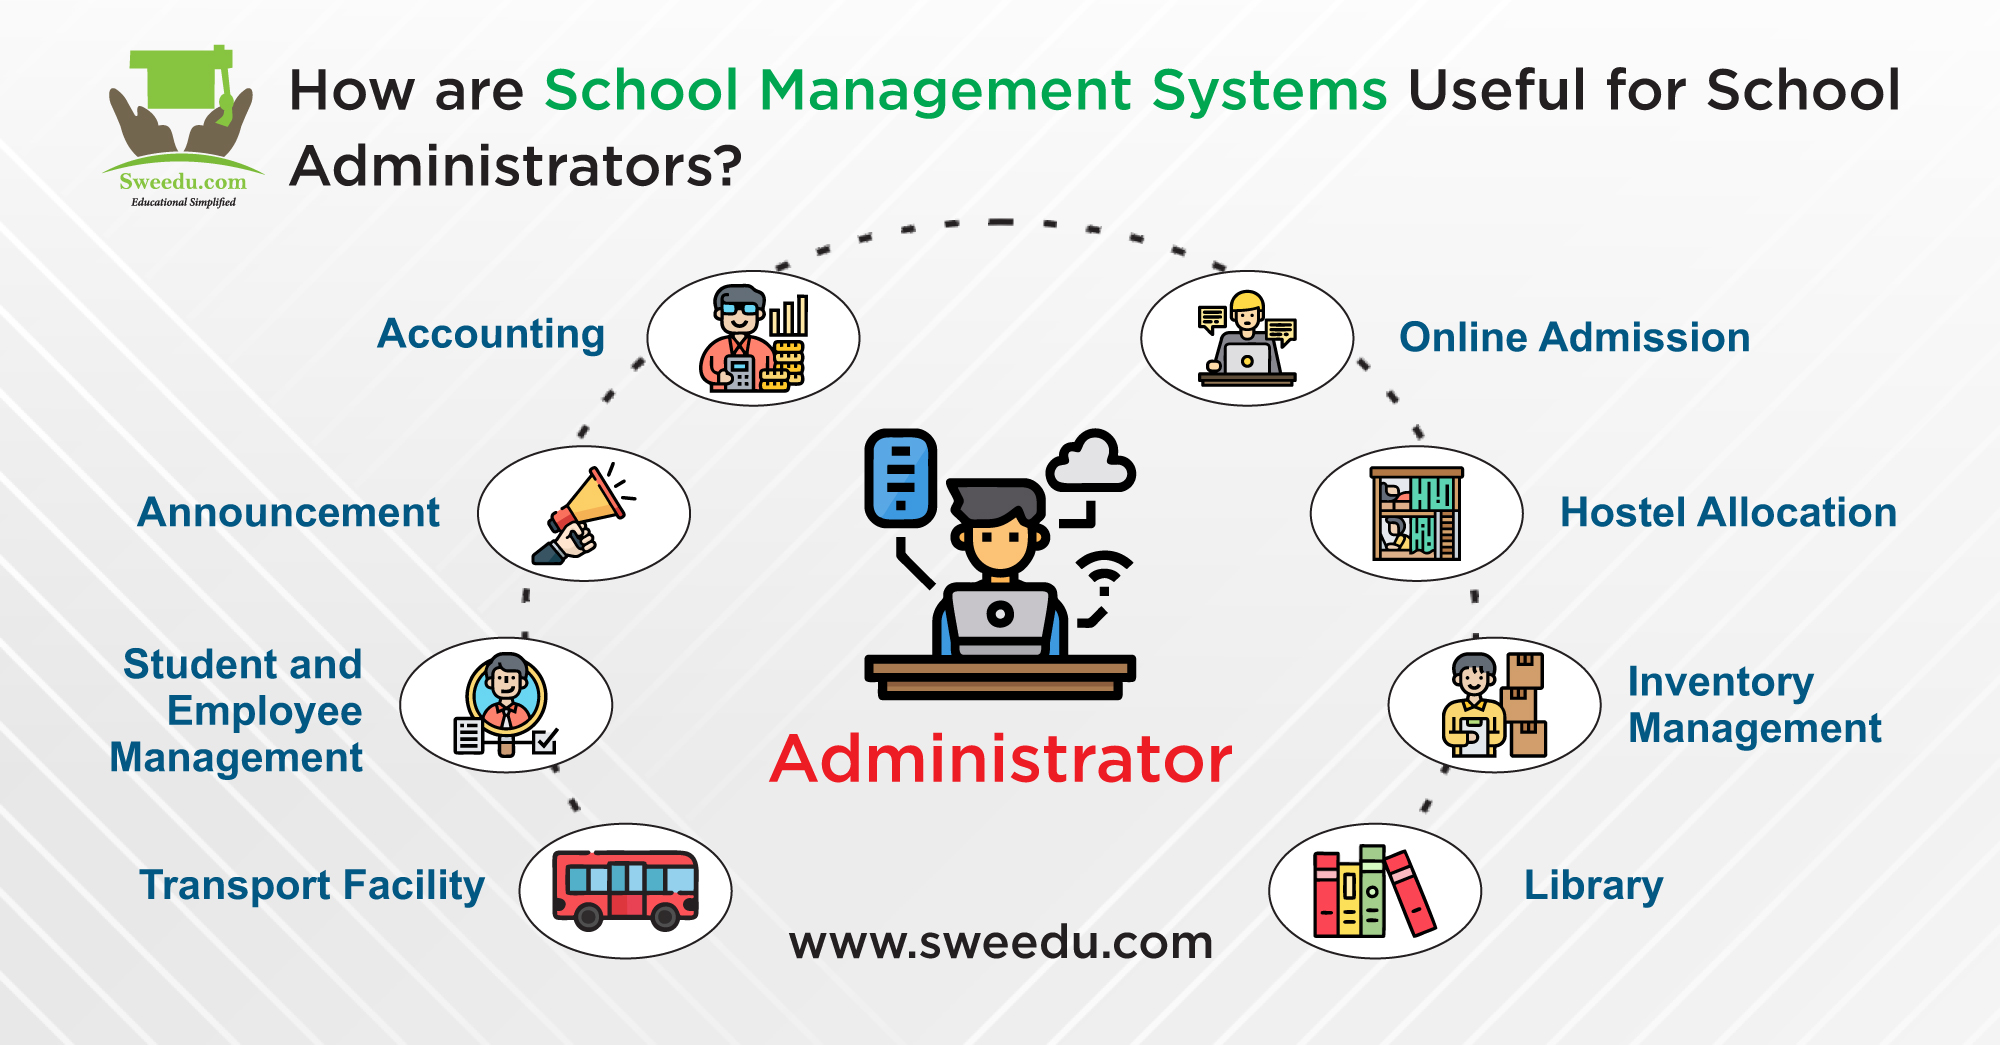 School Systems Useful for School Administrators